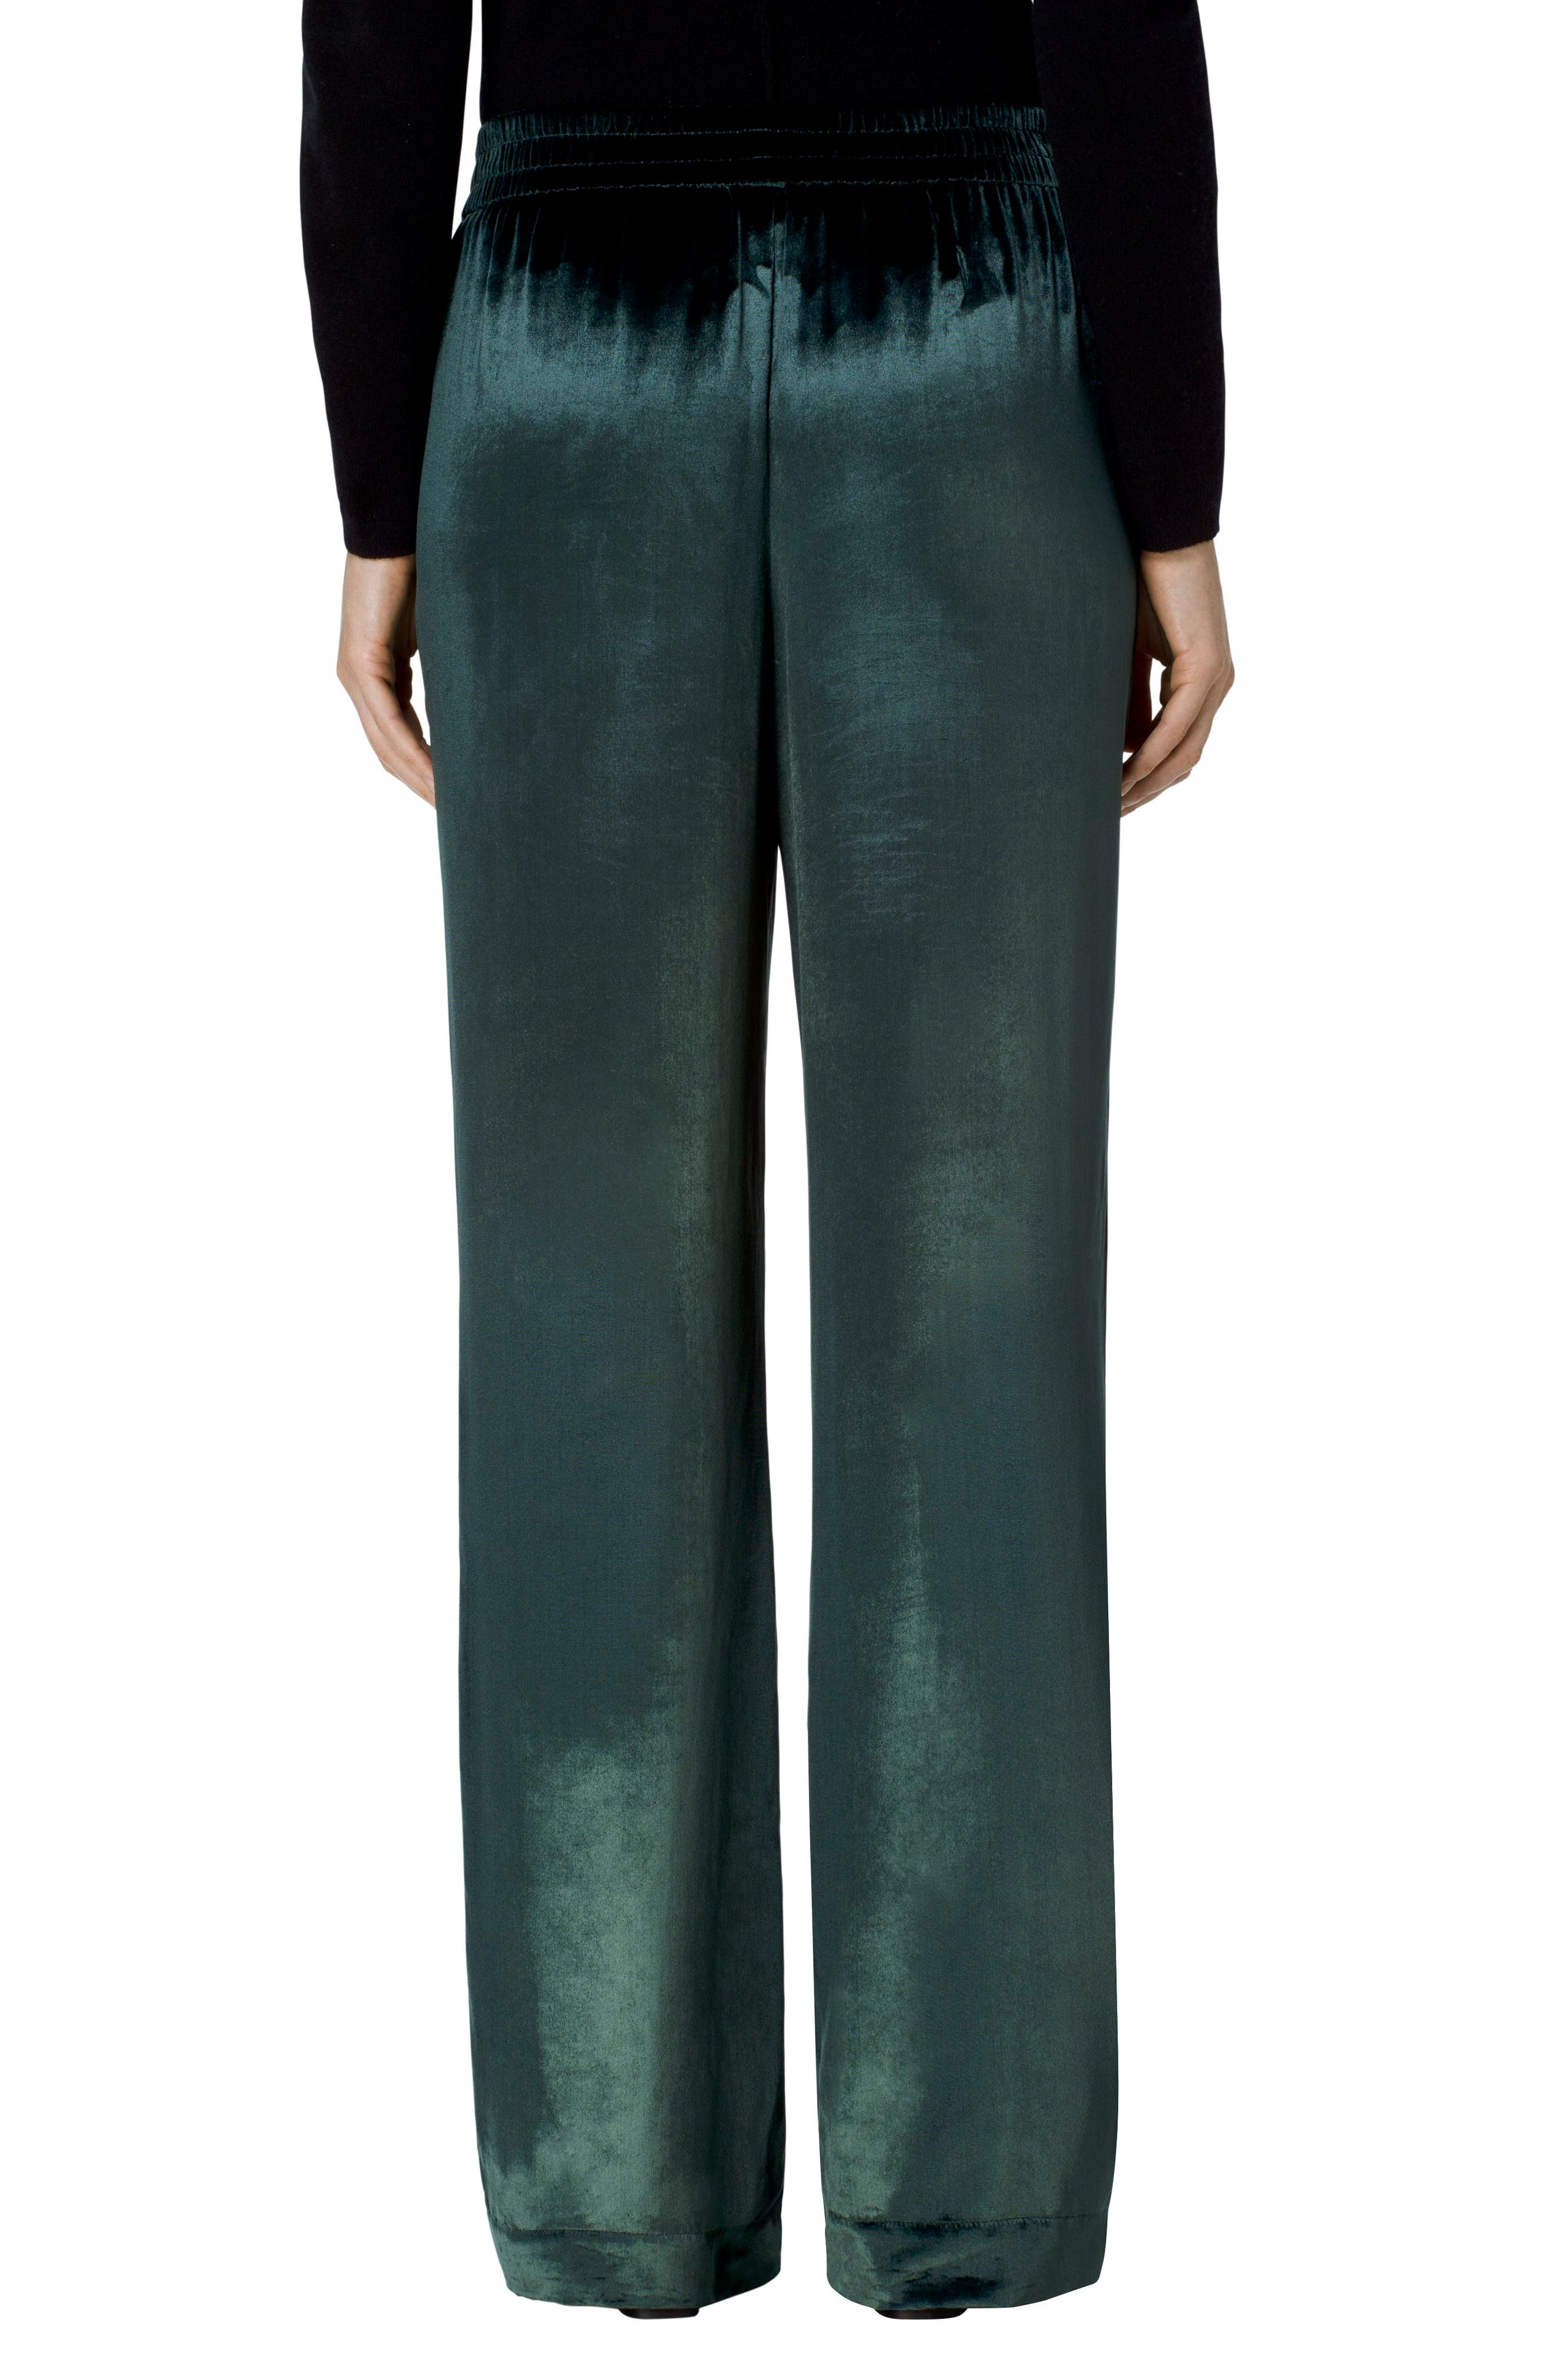 Ardon Velvet Pants,                             Alternate thumbnail 2, color,                             Moorland